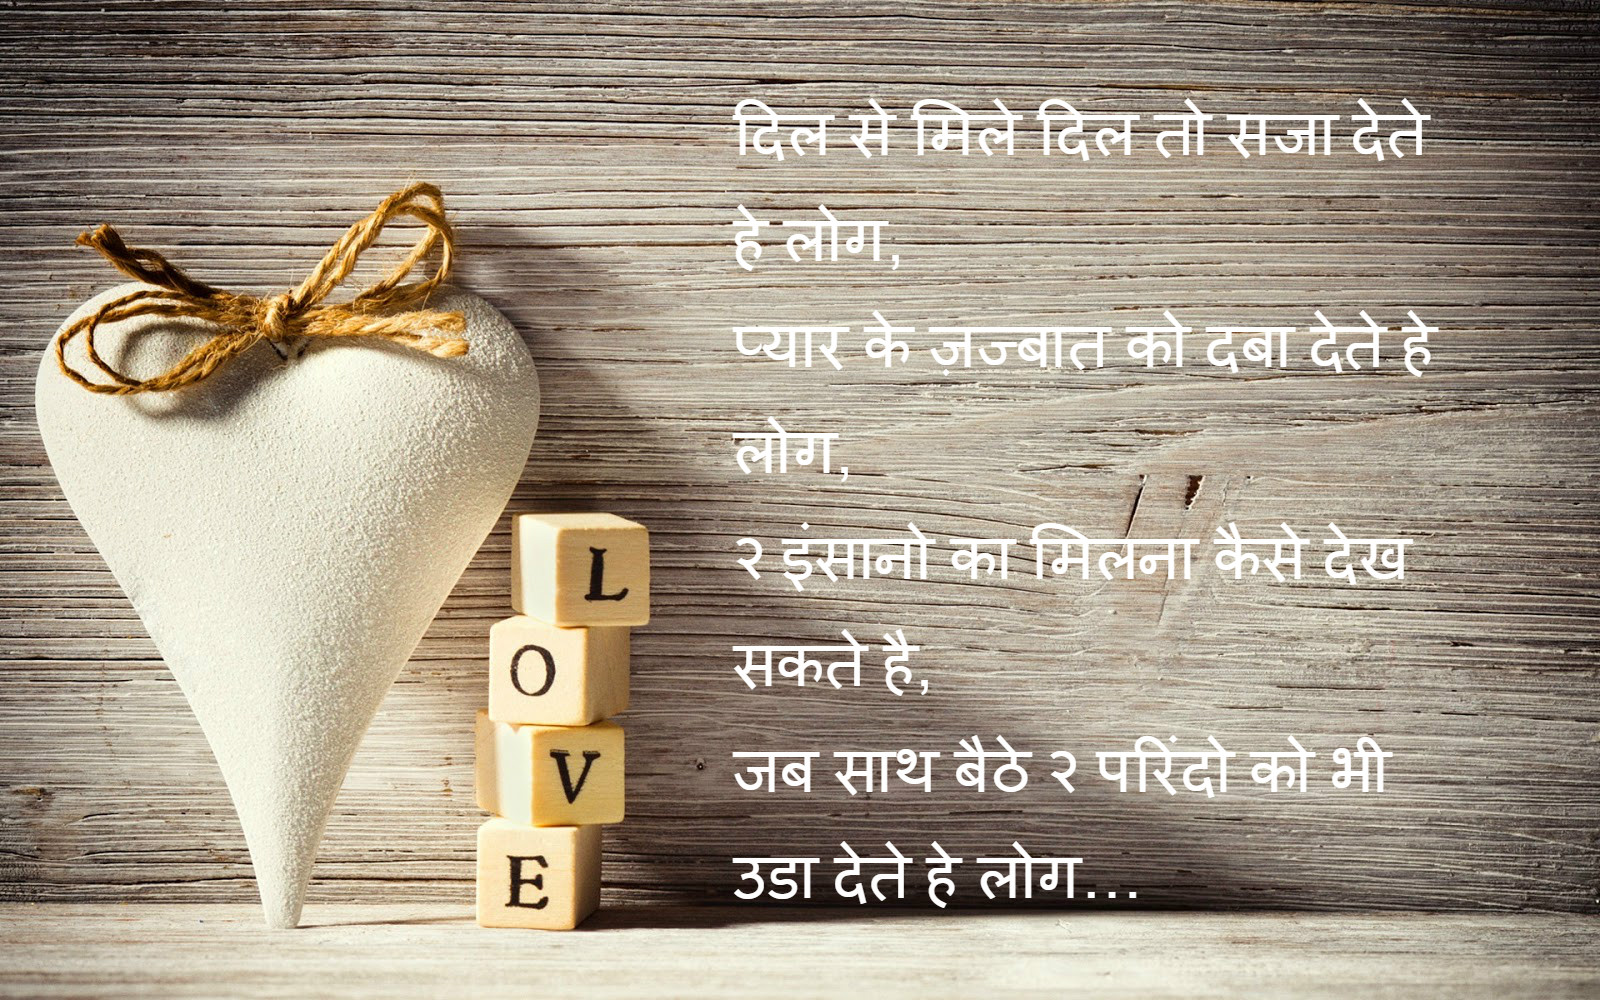 Wallpaper download love shayri - Love Shayari Sms In Hindi With Lovely Images